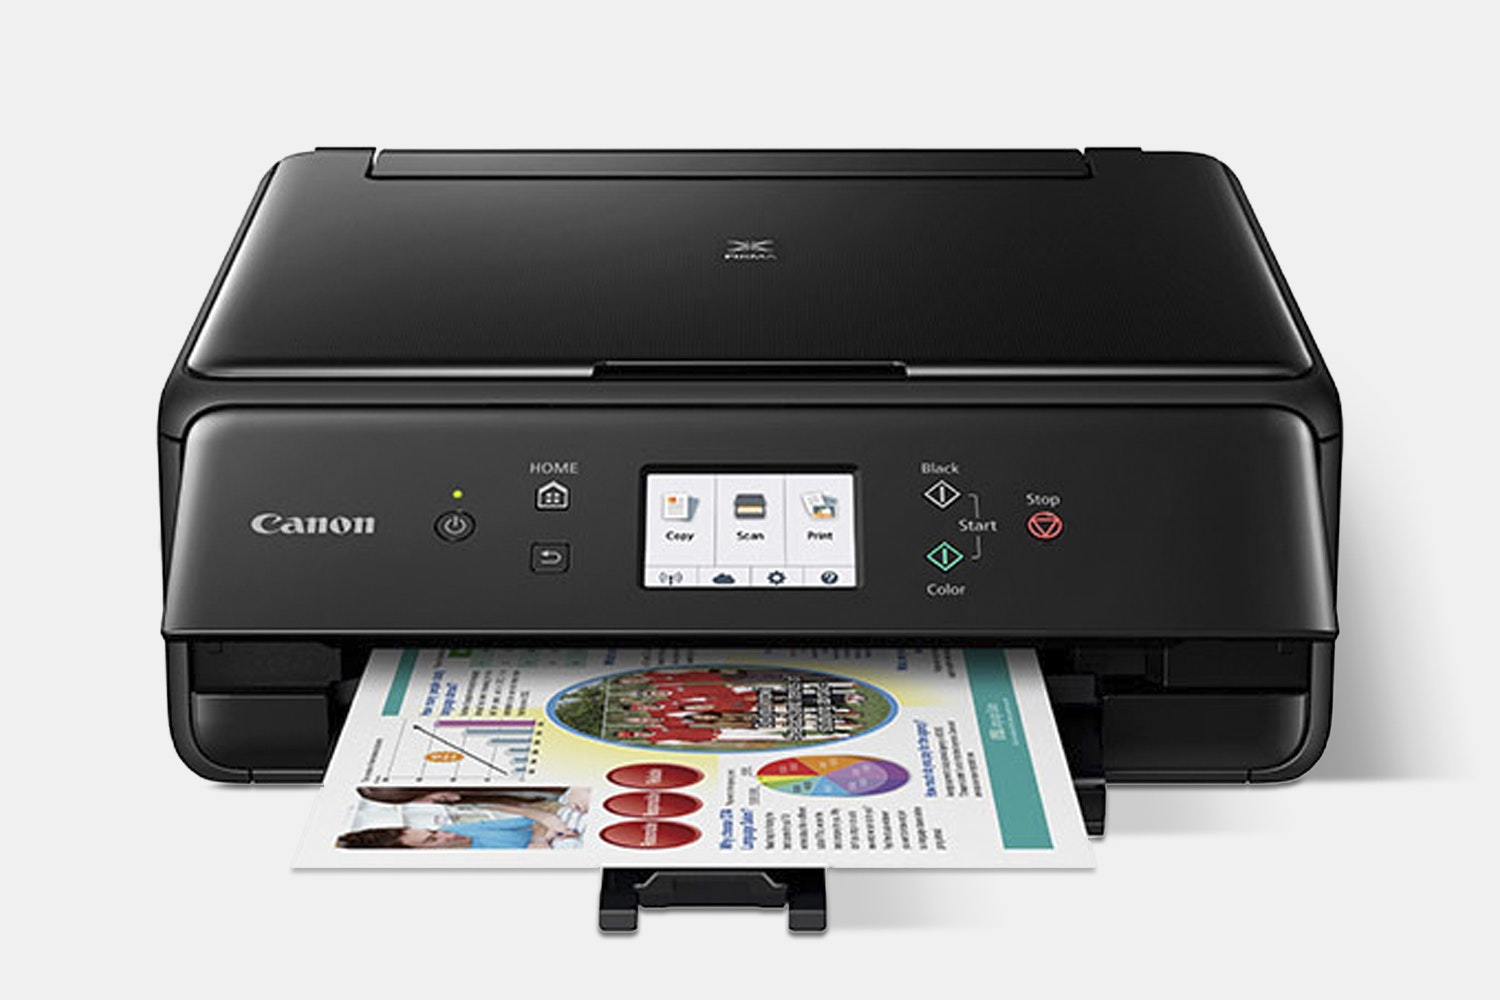 Canon PIXMA TS6020 Wireless/Mobile All In One